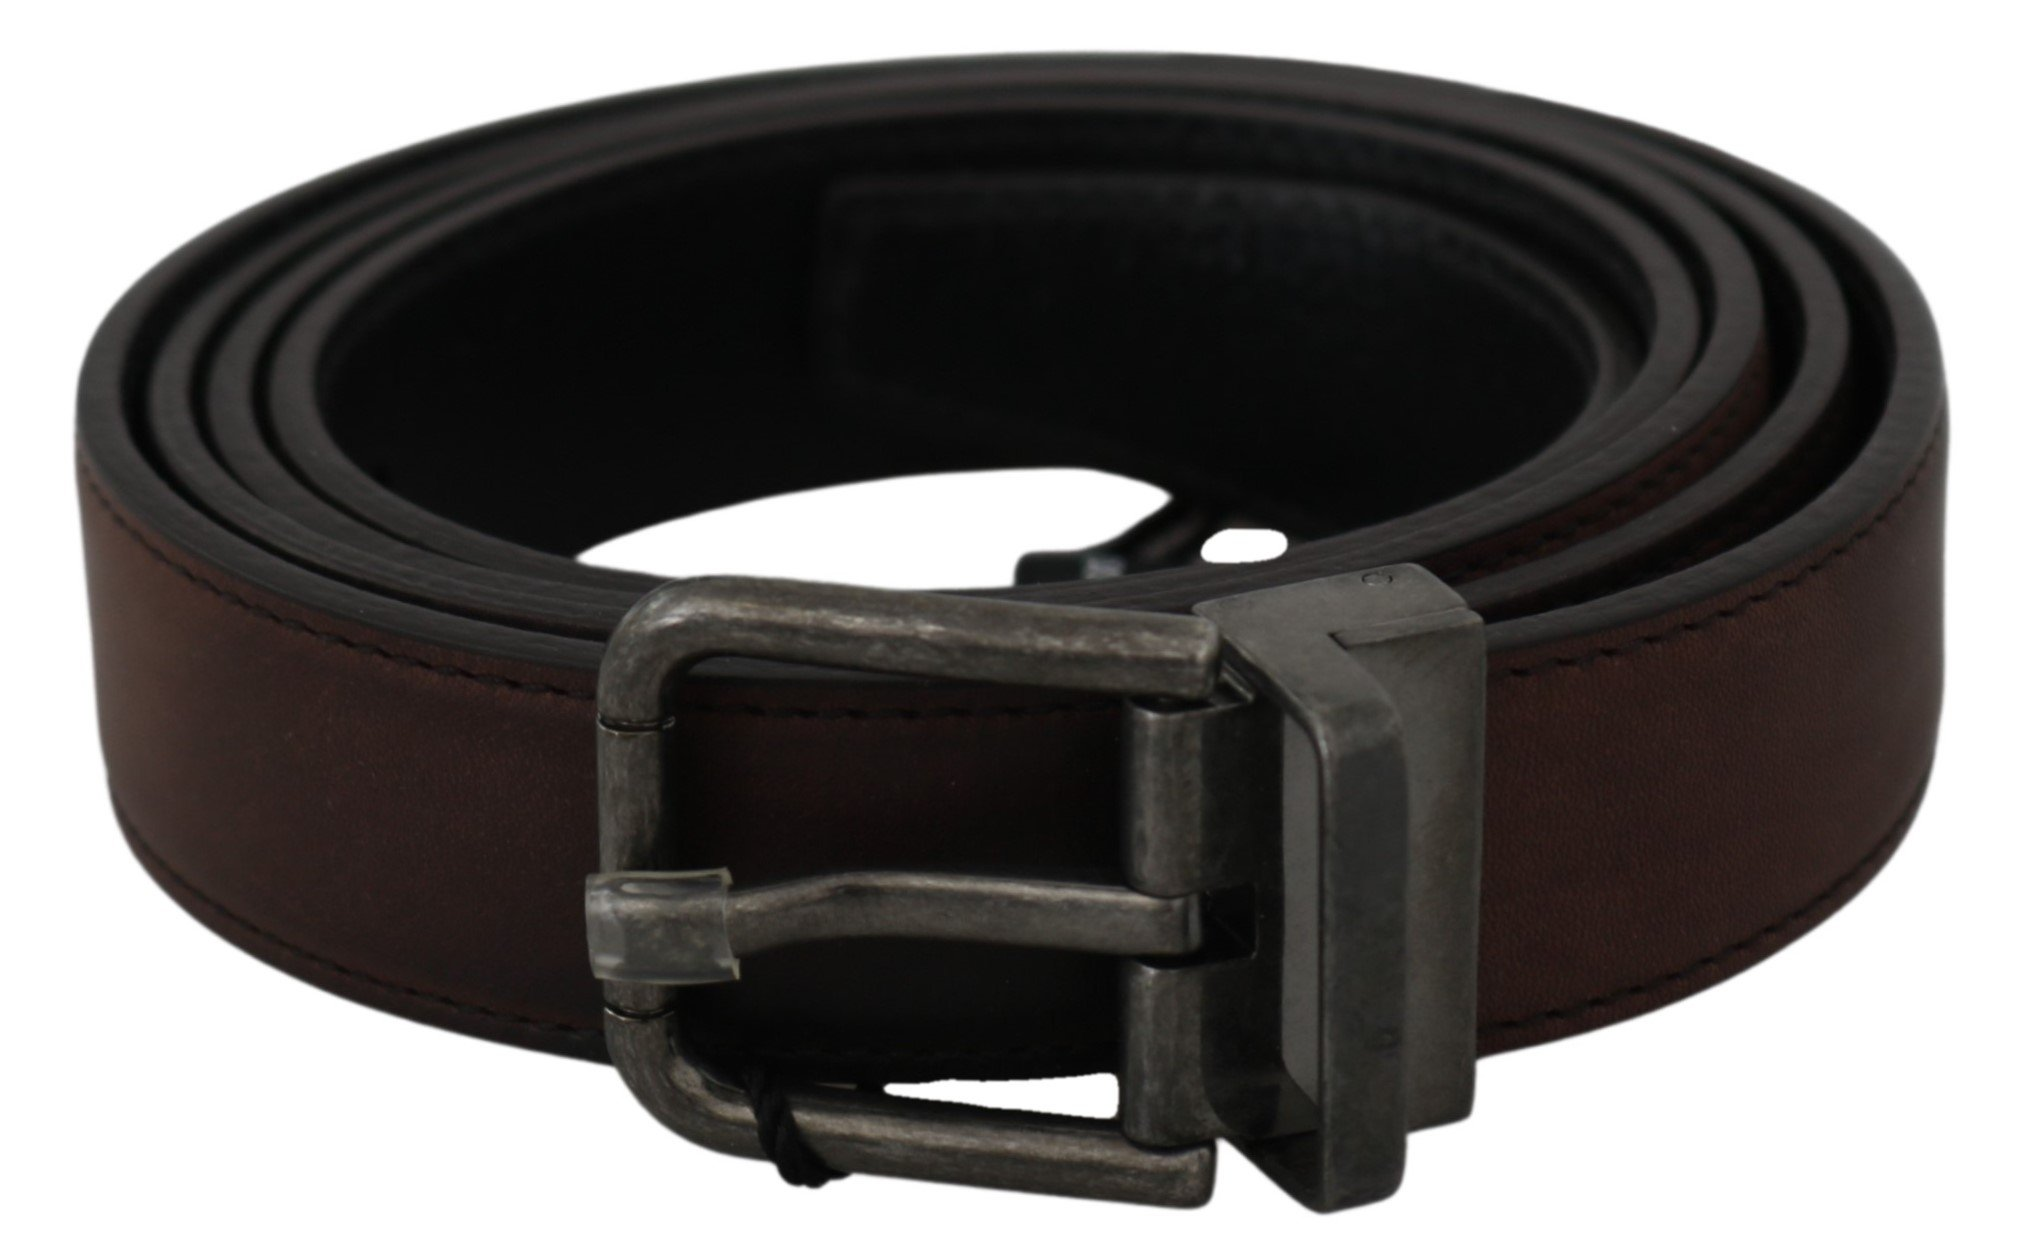 Solid Brown Leather Gray Buckle Belt - 100 cm / 40 Inches